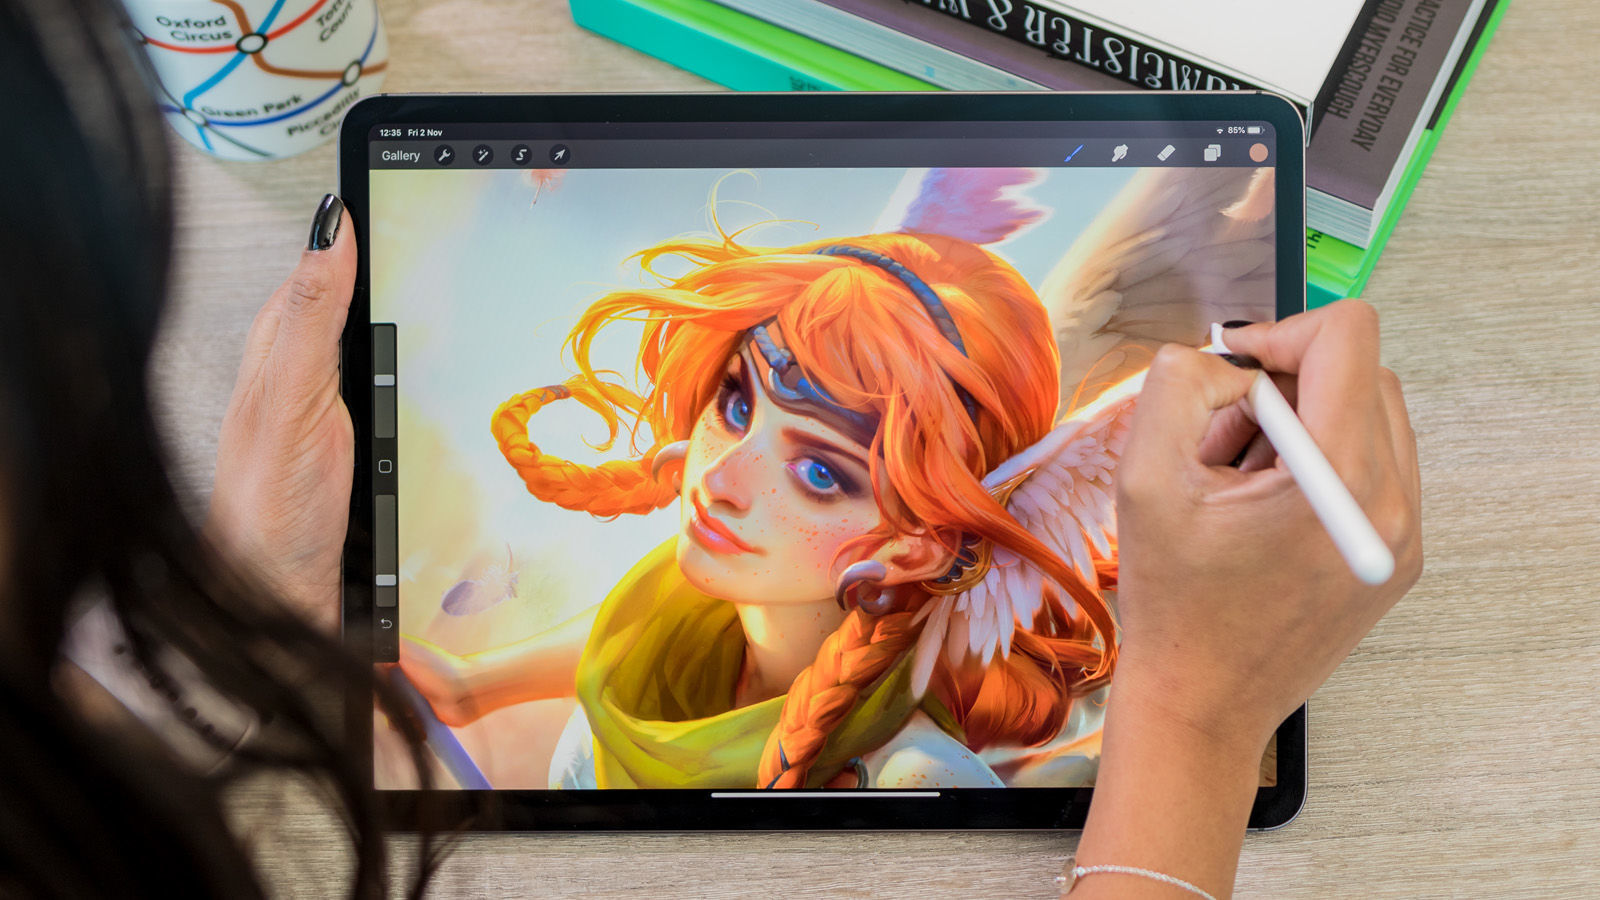 ipad pro tablet apple illustration artists digital table designers wacom 9in arts there much mobilestudio creative which